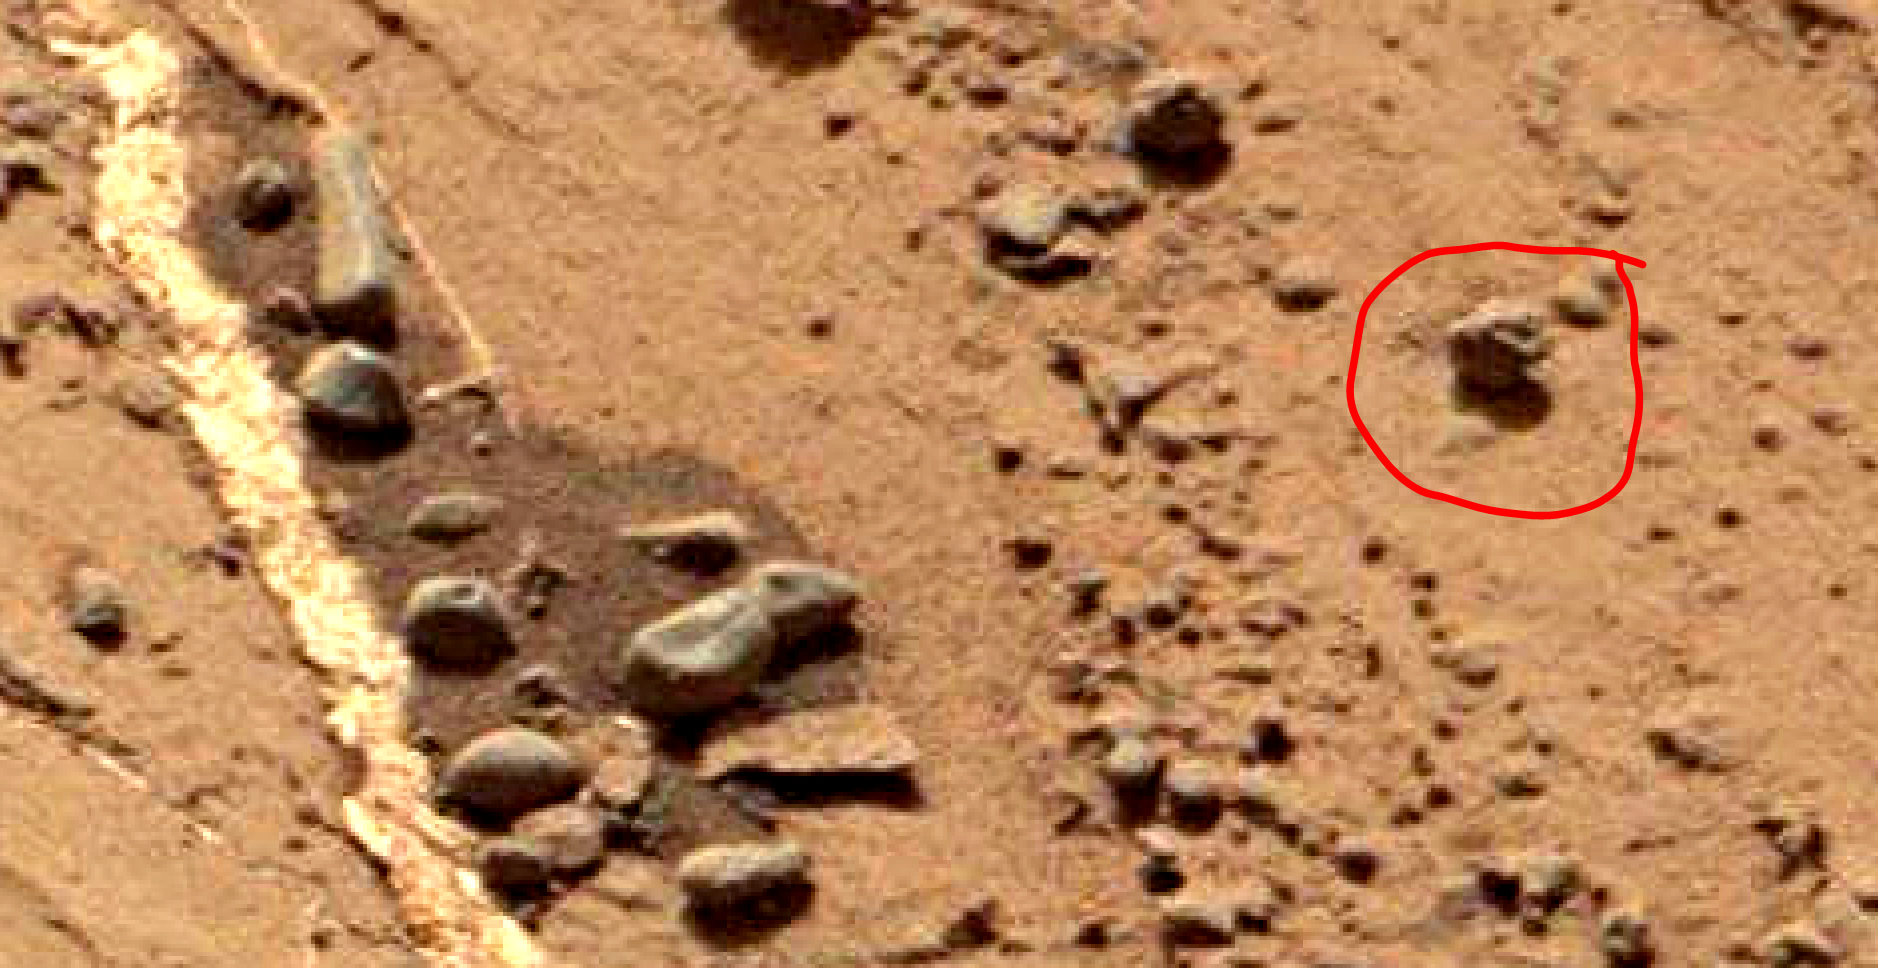 mars-sol-1456-anomaly-artifacts-4a-was-life-on-mars